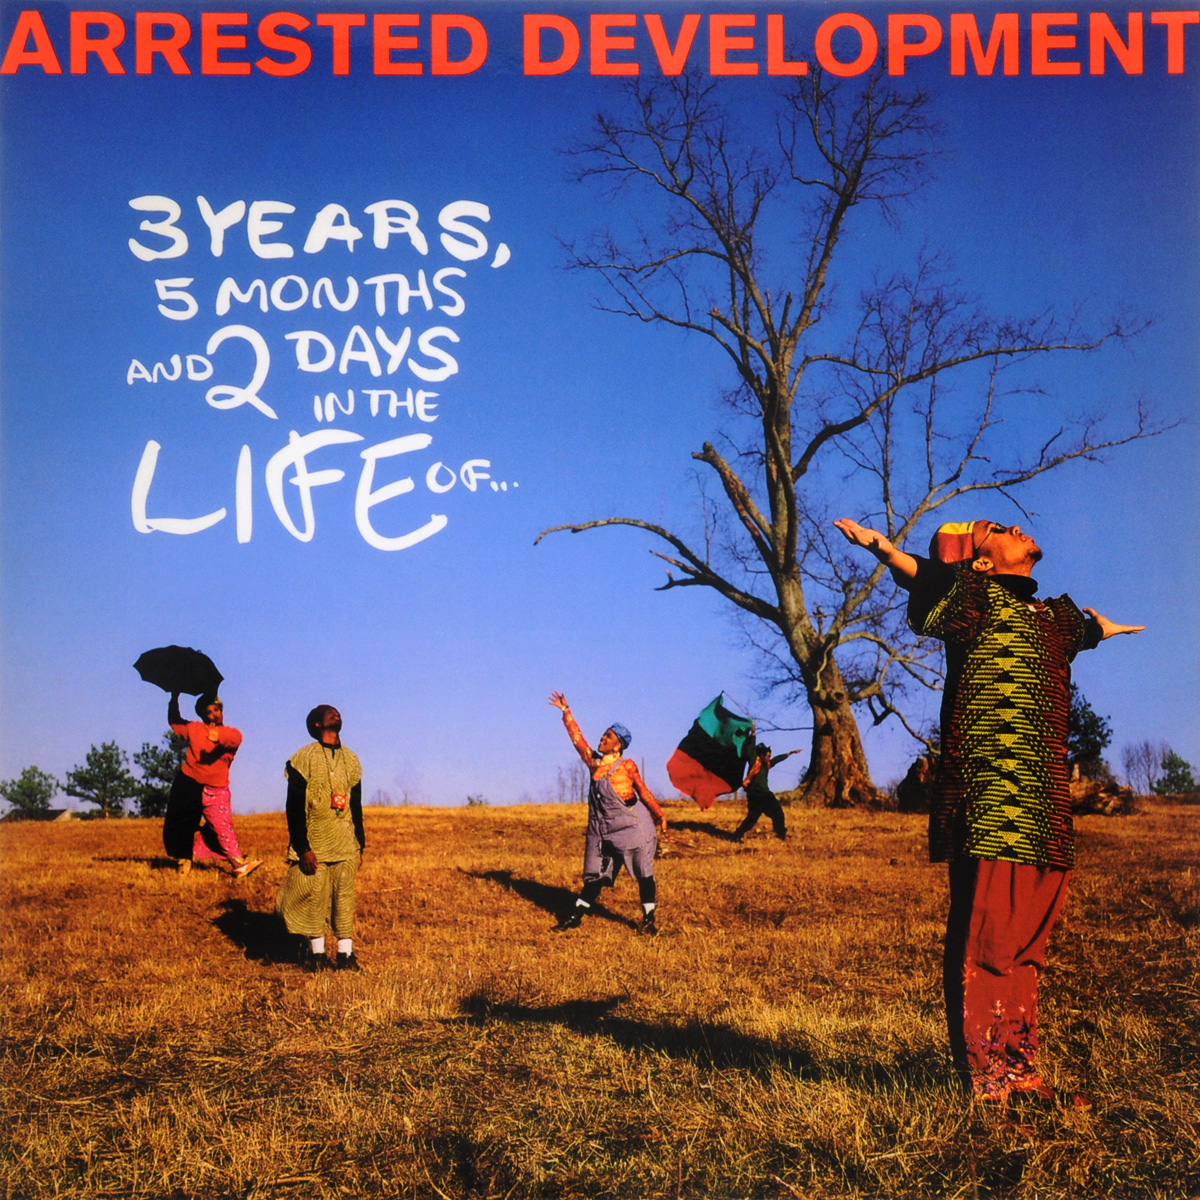 Arrested Development Arrested Development. 3 Years, 5 Months And 2 Days In The Life (LP) синийцвет 3 6 months